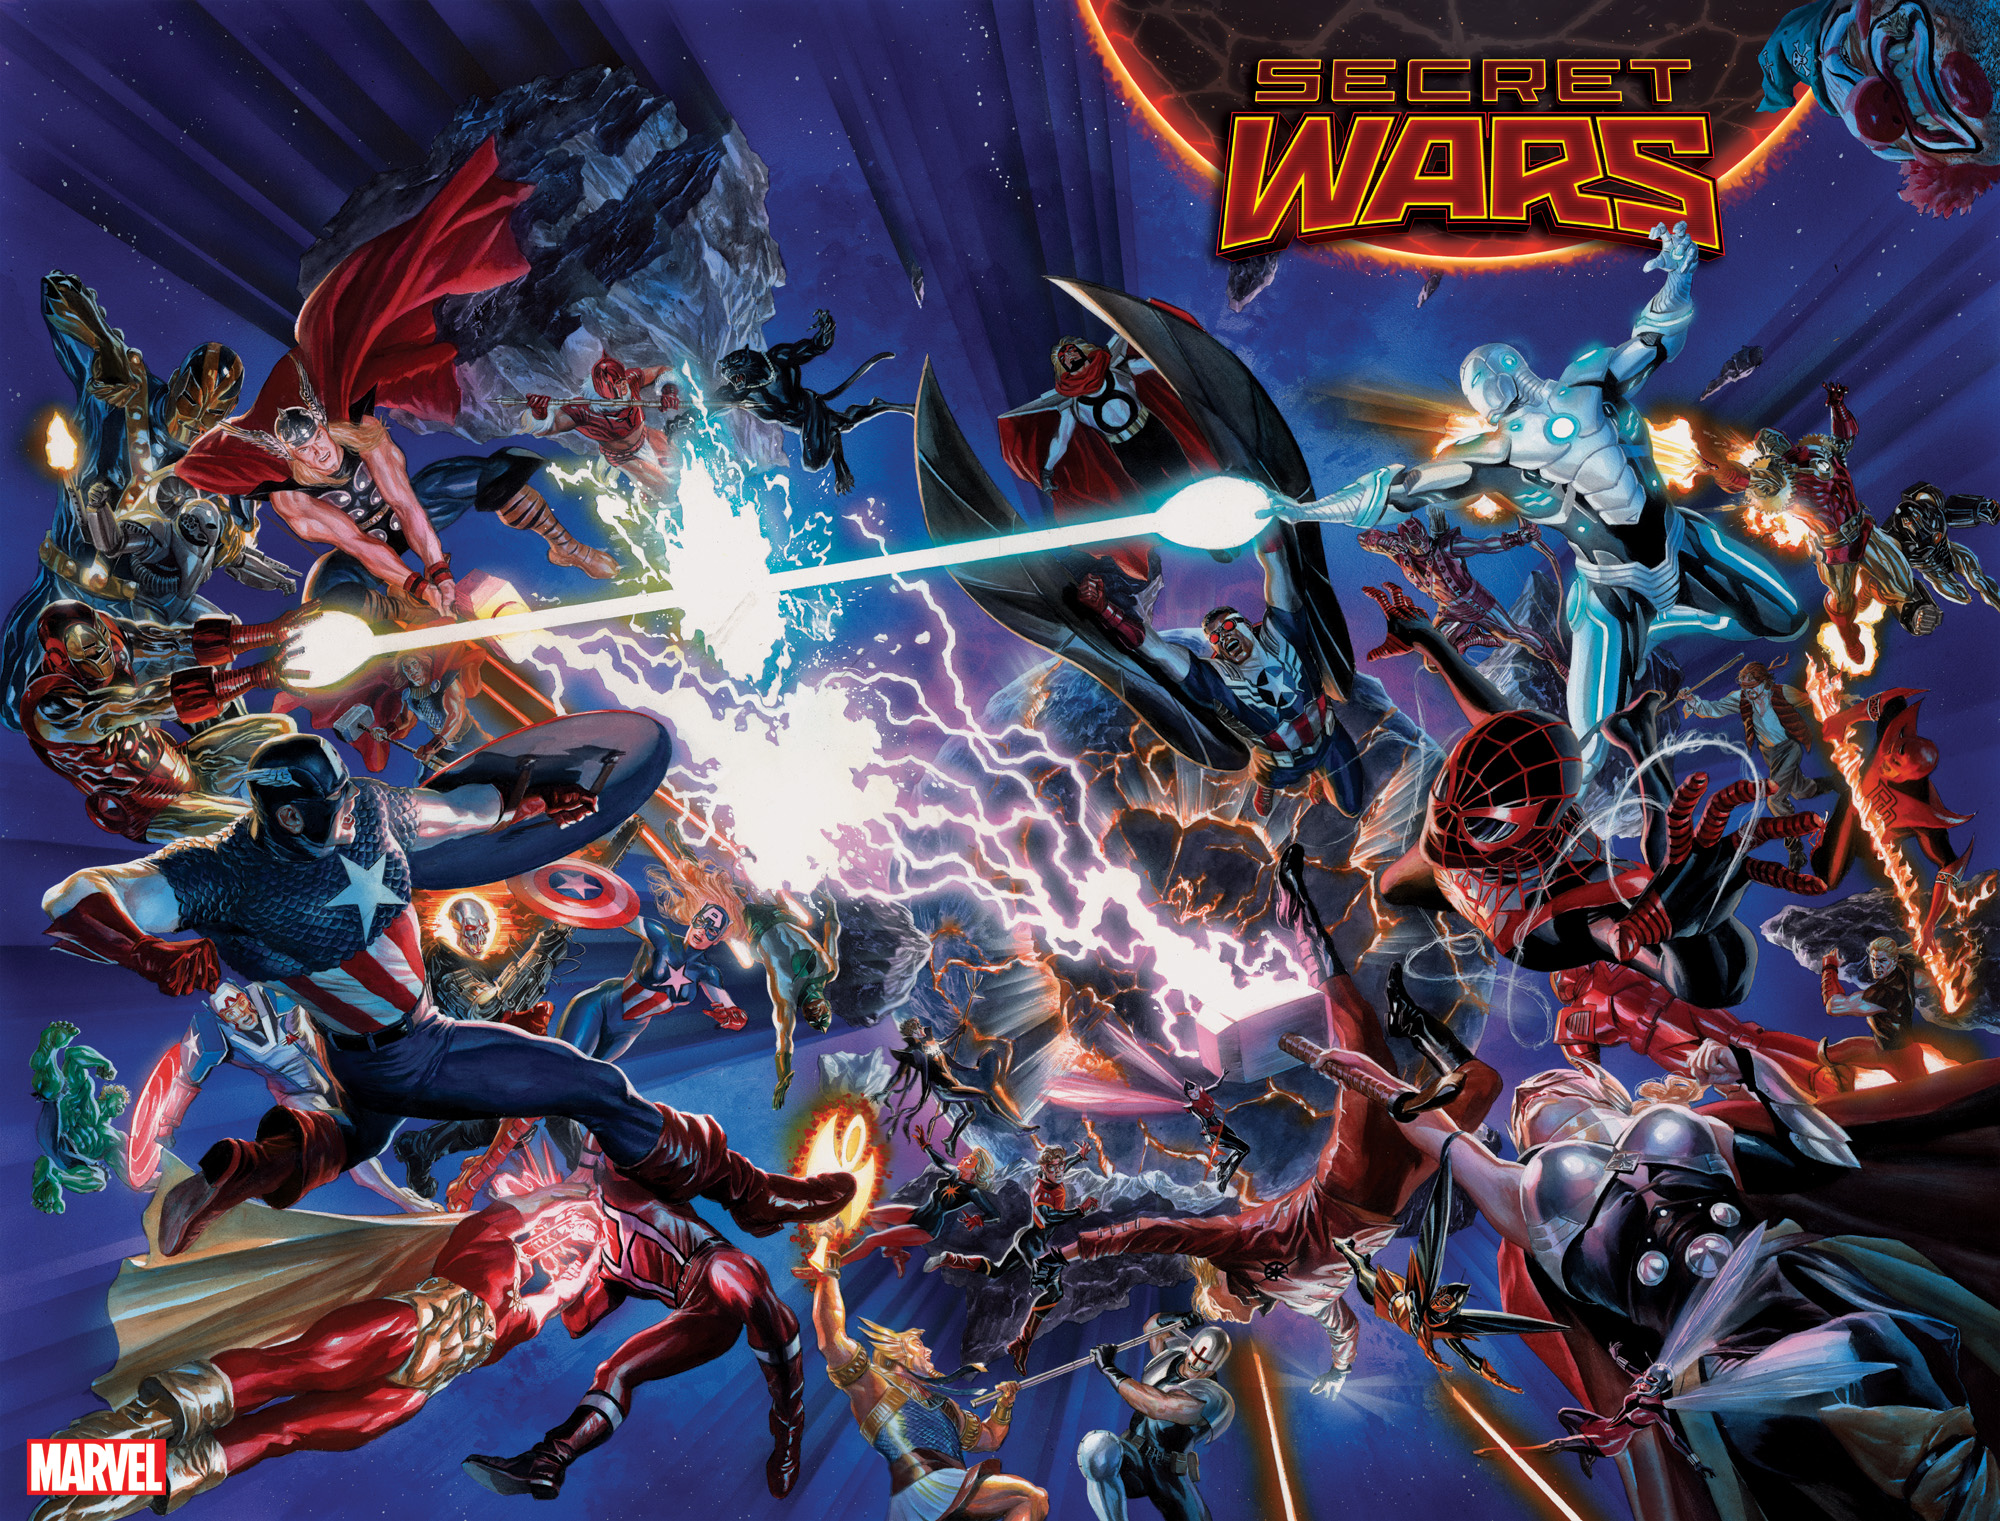 Secret Wars #1, Marvel Comics